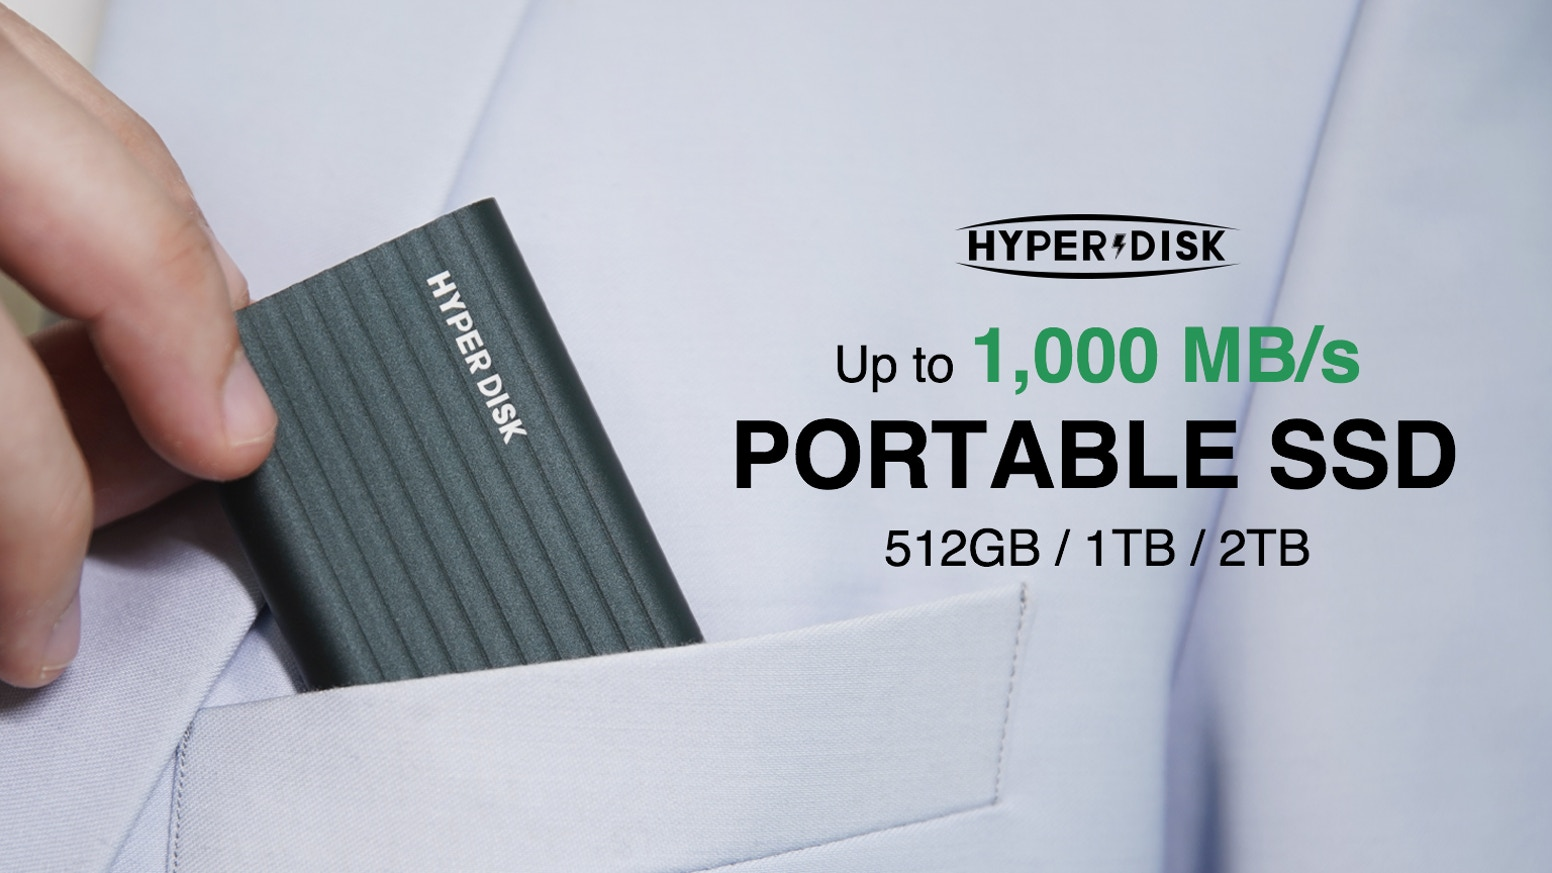 HyperDisk: Pocket-sized & High-speed Portable SSD